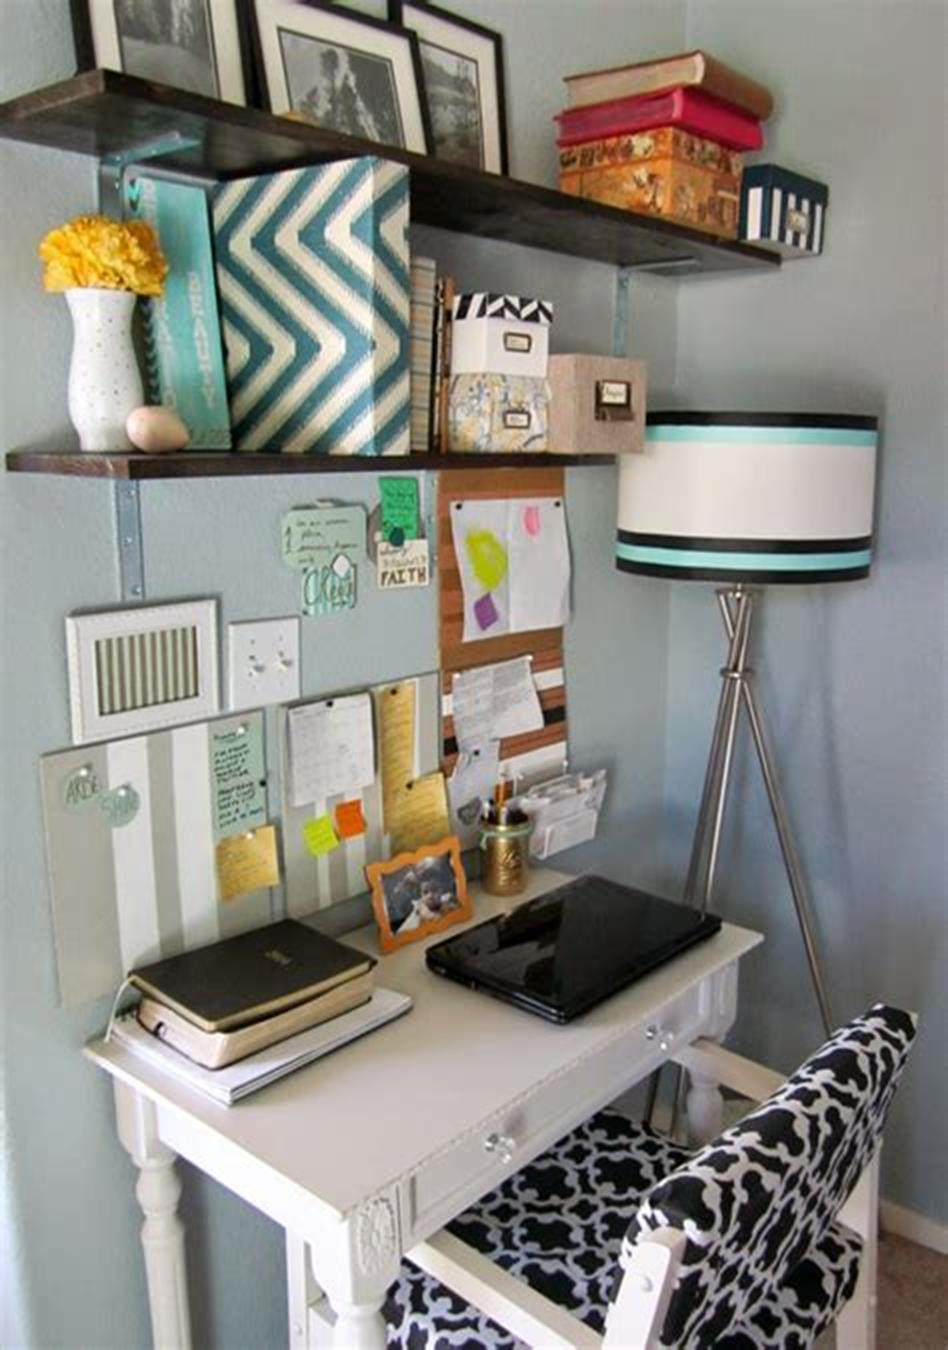 50 Best Small Space Office Decorating Ideas On a Budget 2019 59